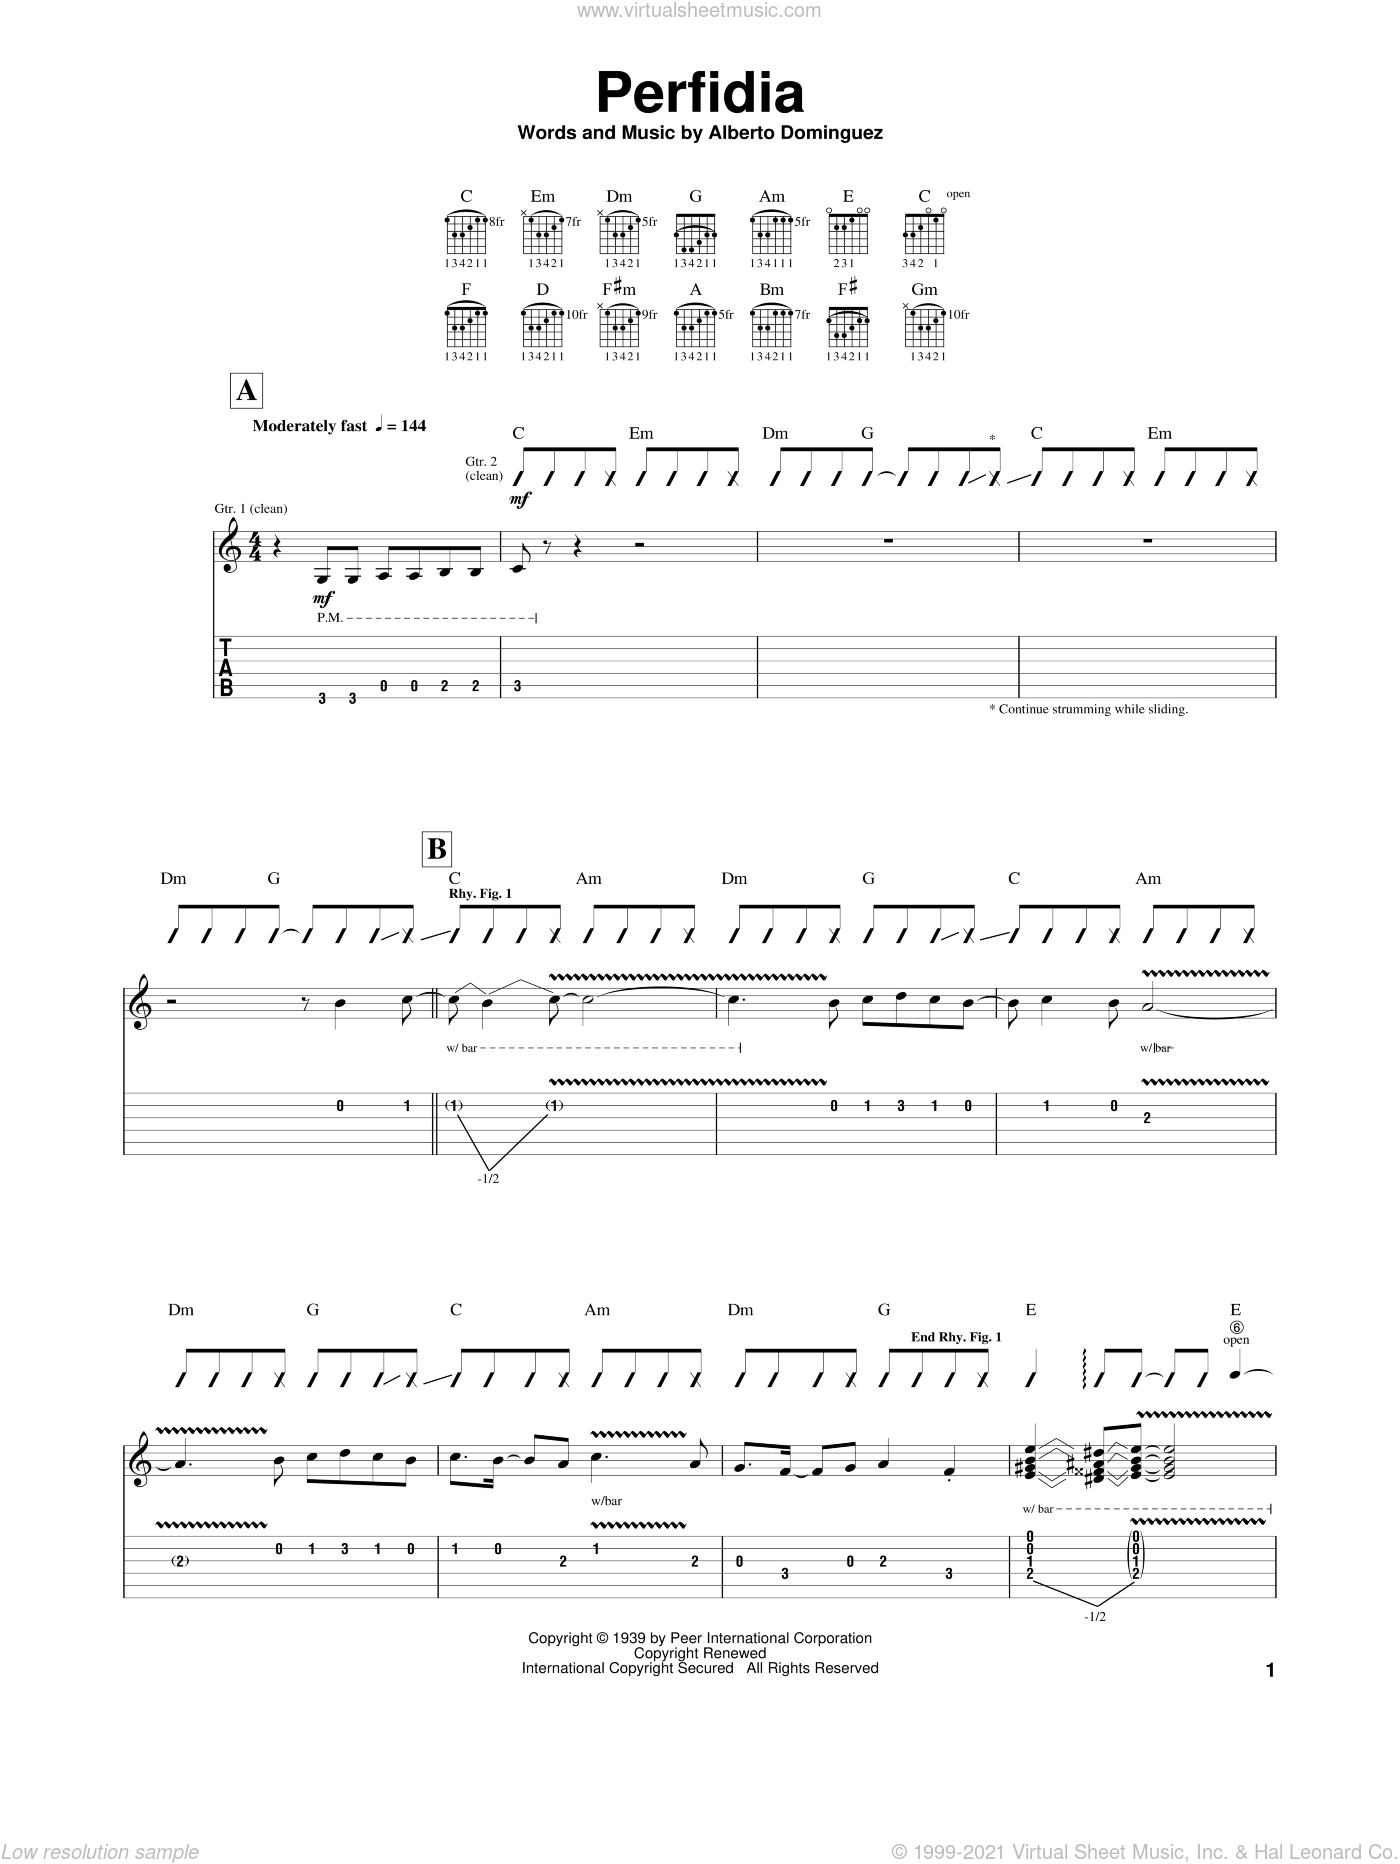 Perfidia sheet music for guitar (tablature) by Alberto Dominguez